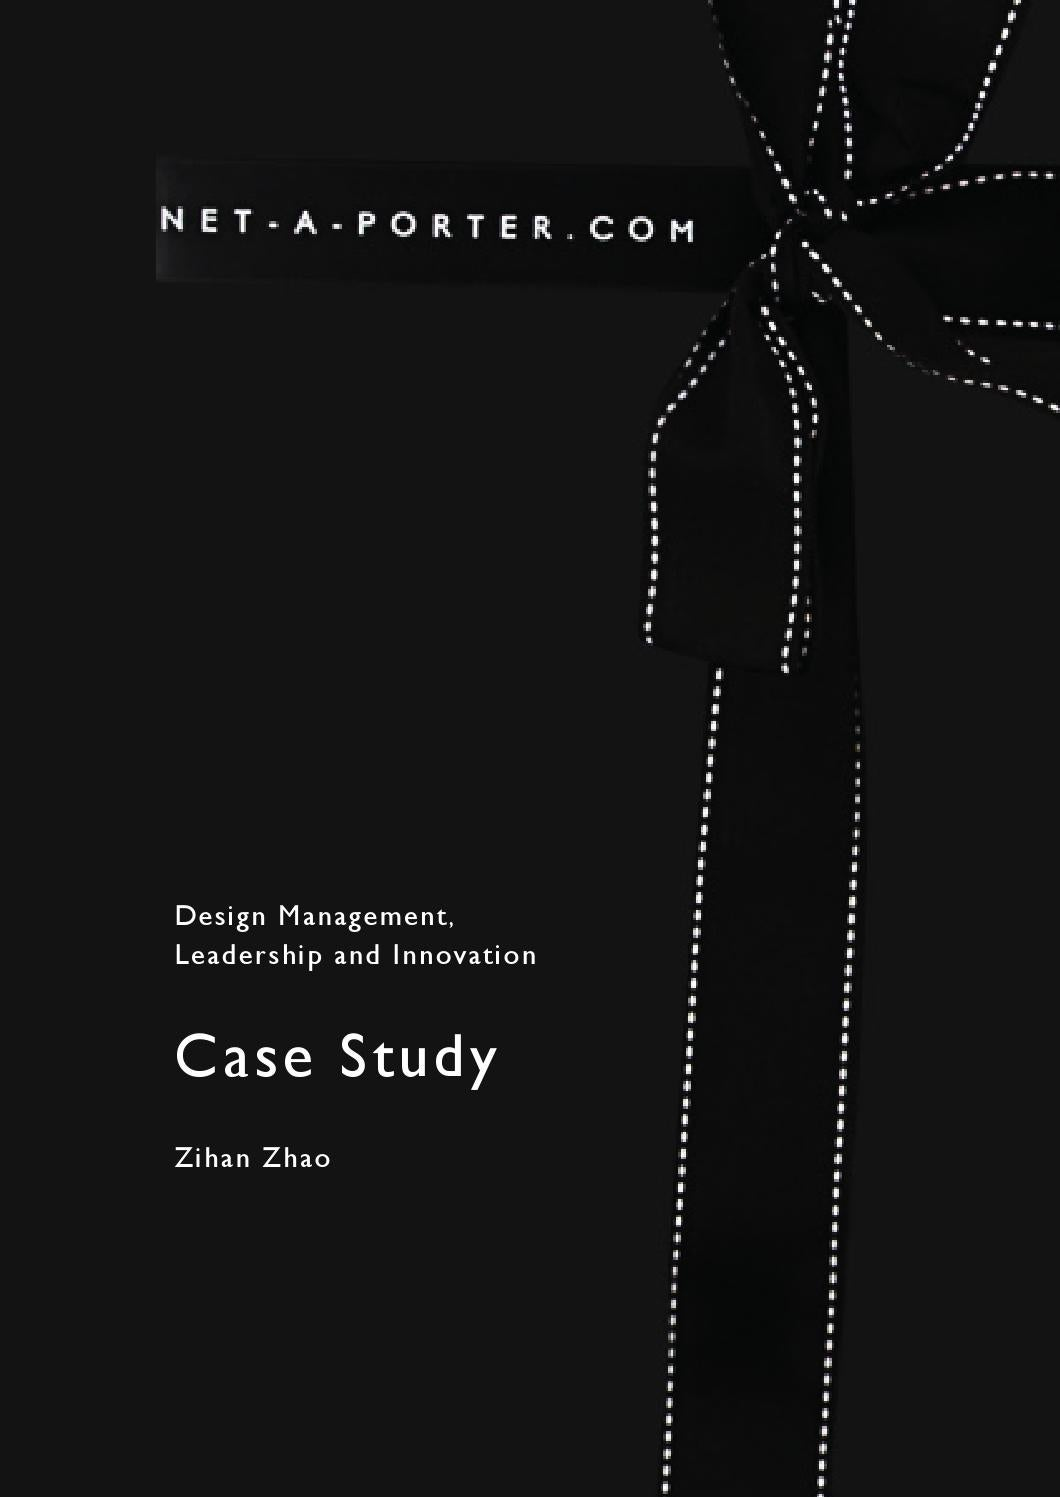 zara fast fashion case study summary Executive summary this project aims at [case study] zara fast fashion zara disseration zara zara supply chain zara zara case study bernard madoff case.